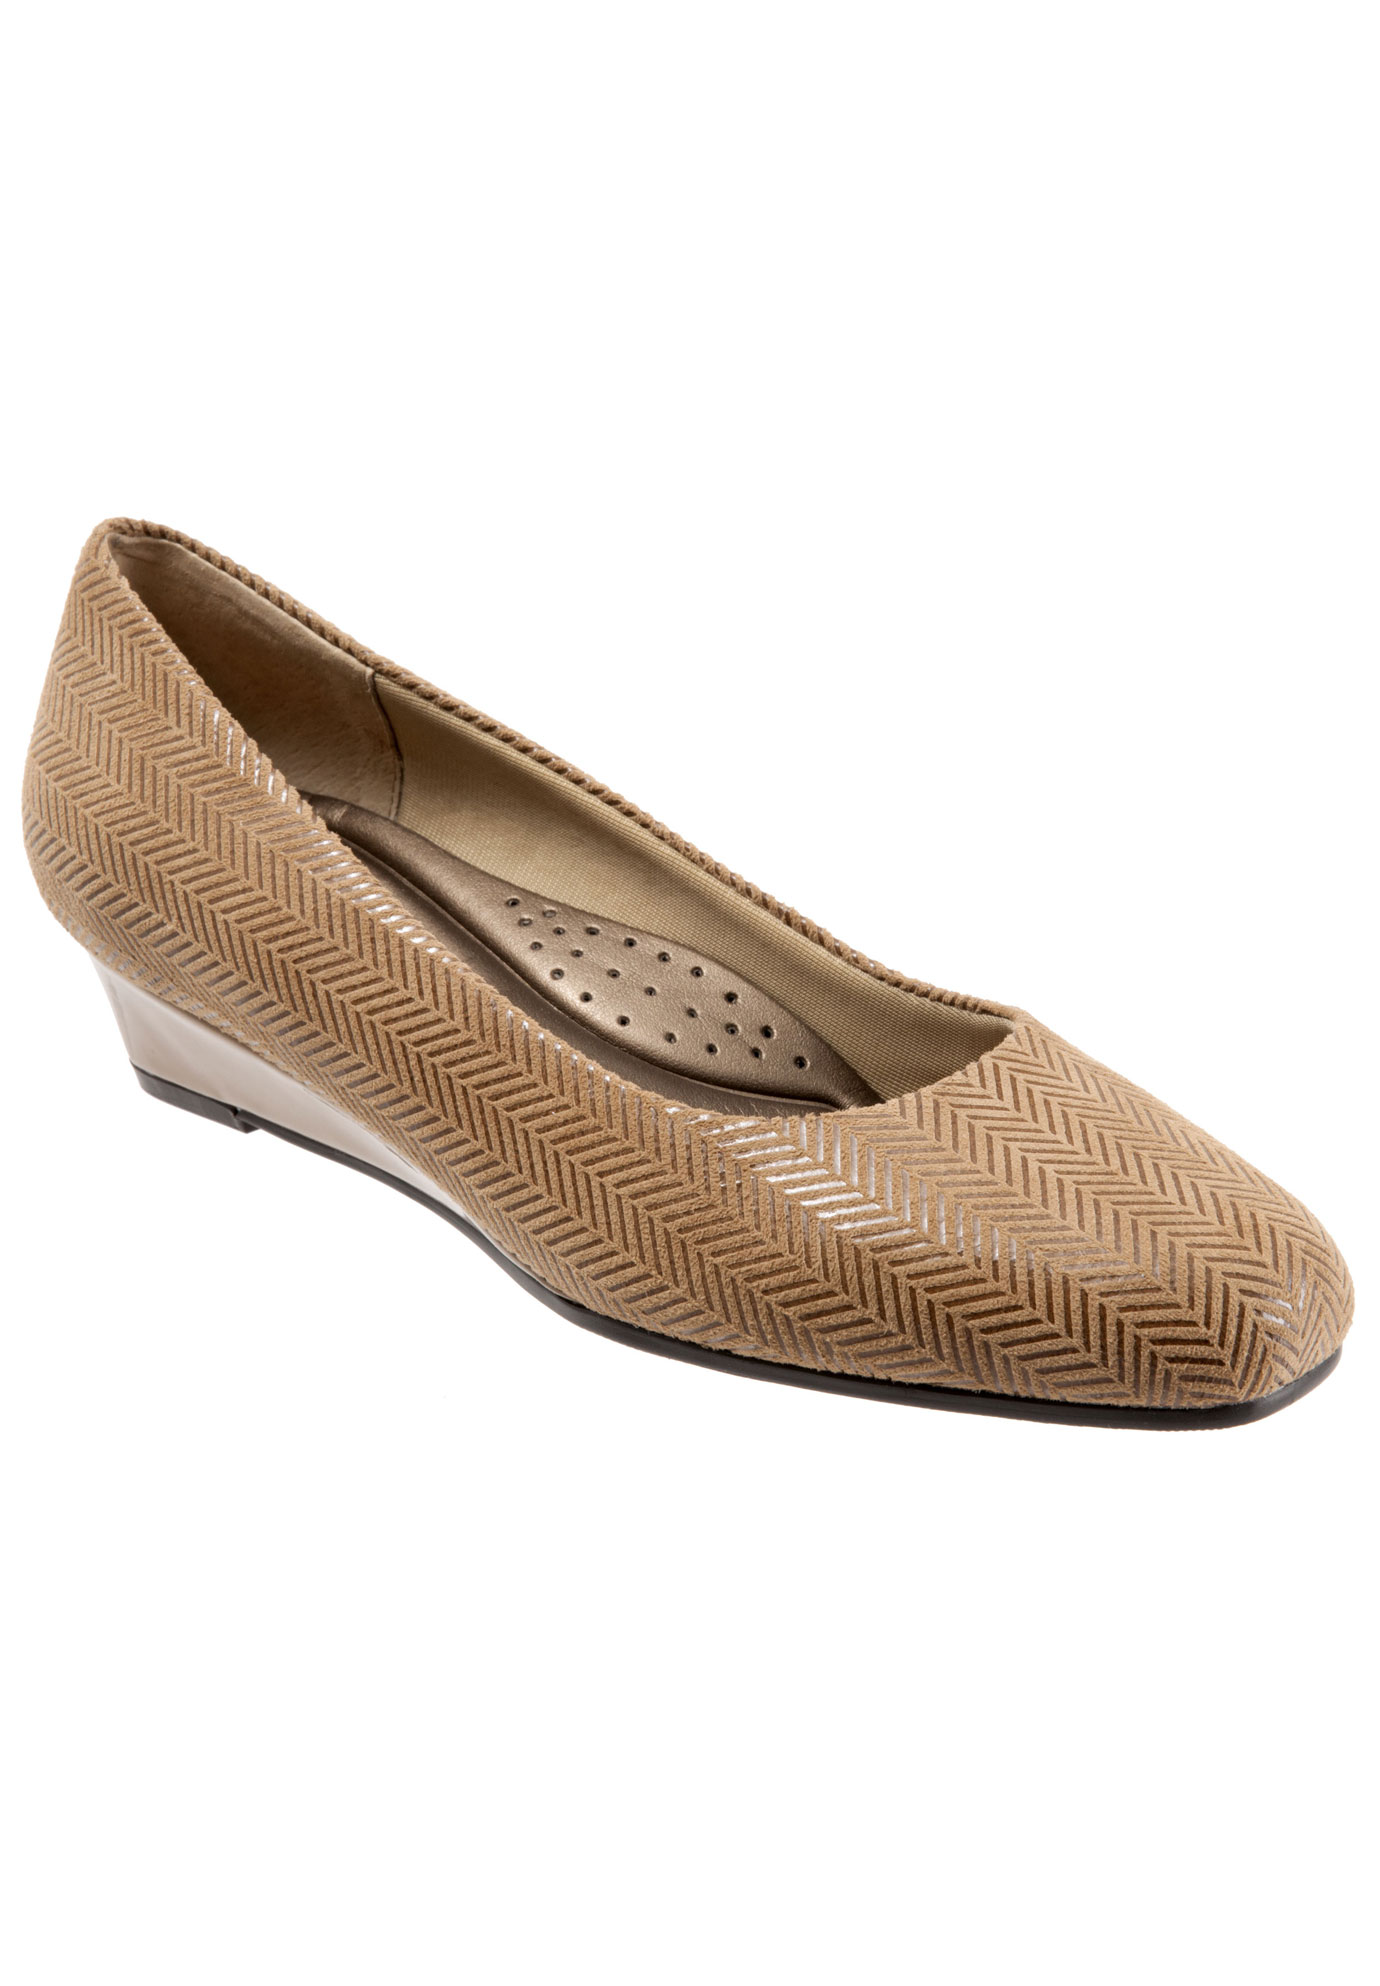 Lauren Leather Wedge by Trotters®,